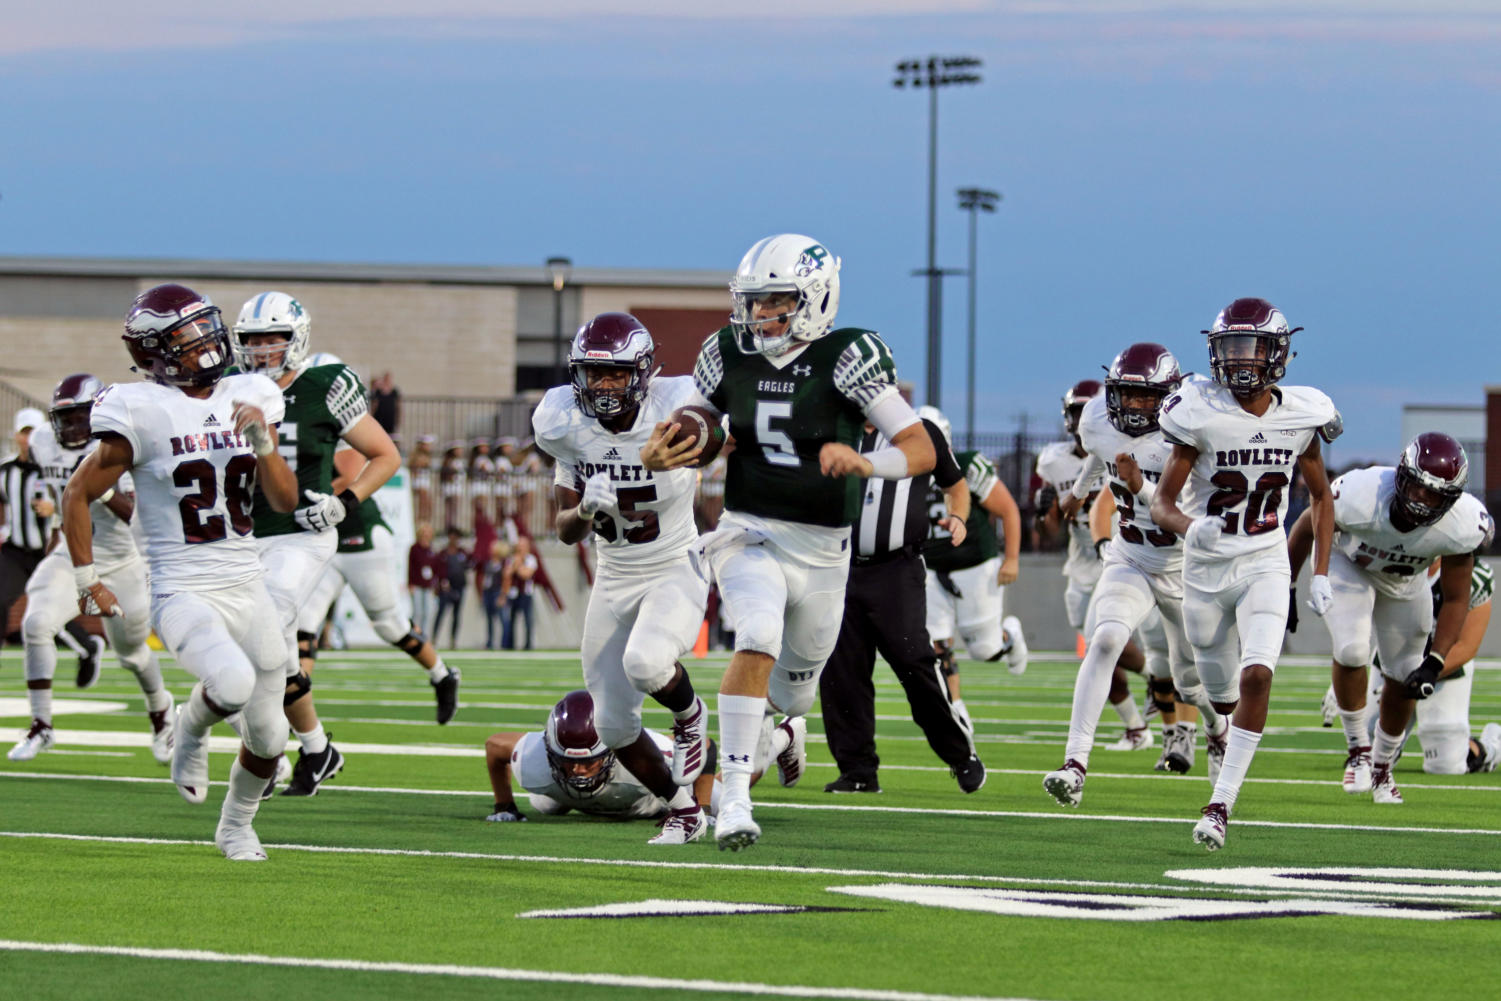 Quaterback+Jackson+Berry+pushes+through+the+tackle+and+finds+a+hole+to+run+the+ball.+He+was+ran+out+of+bounds+at+Rowlett%27s+30-yard+line.+Berry+threw+a+total+of+106+yards+to+end+the+night+and+rushed+68+more.++